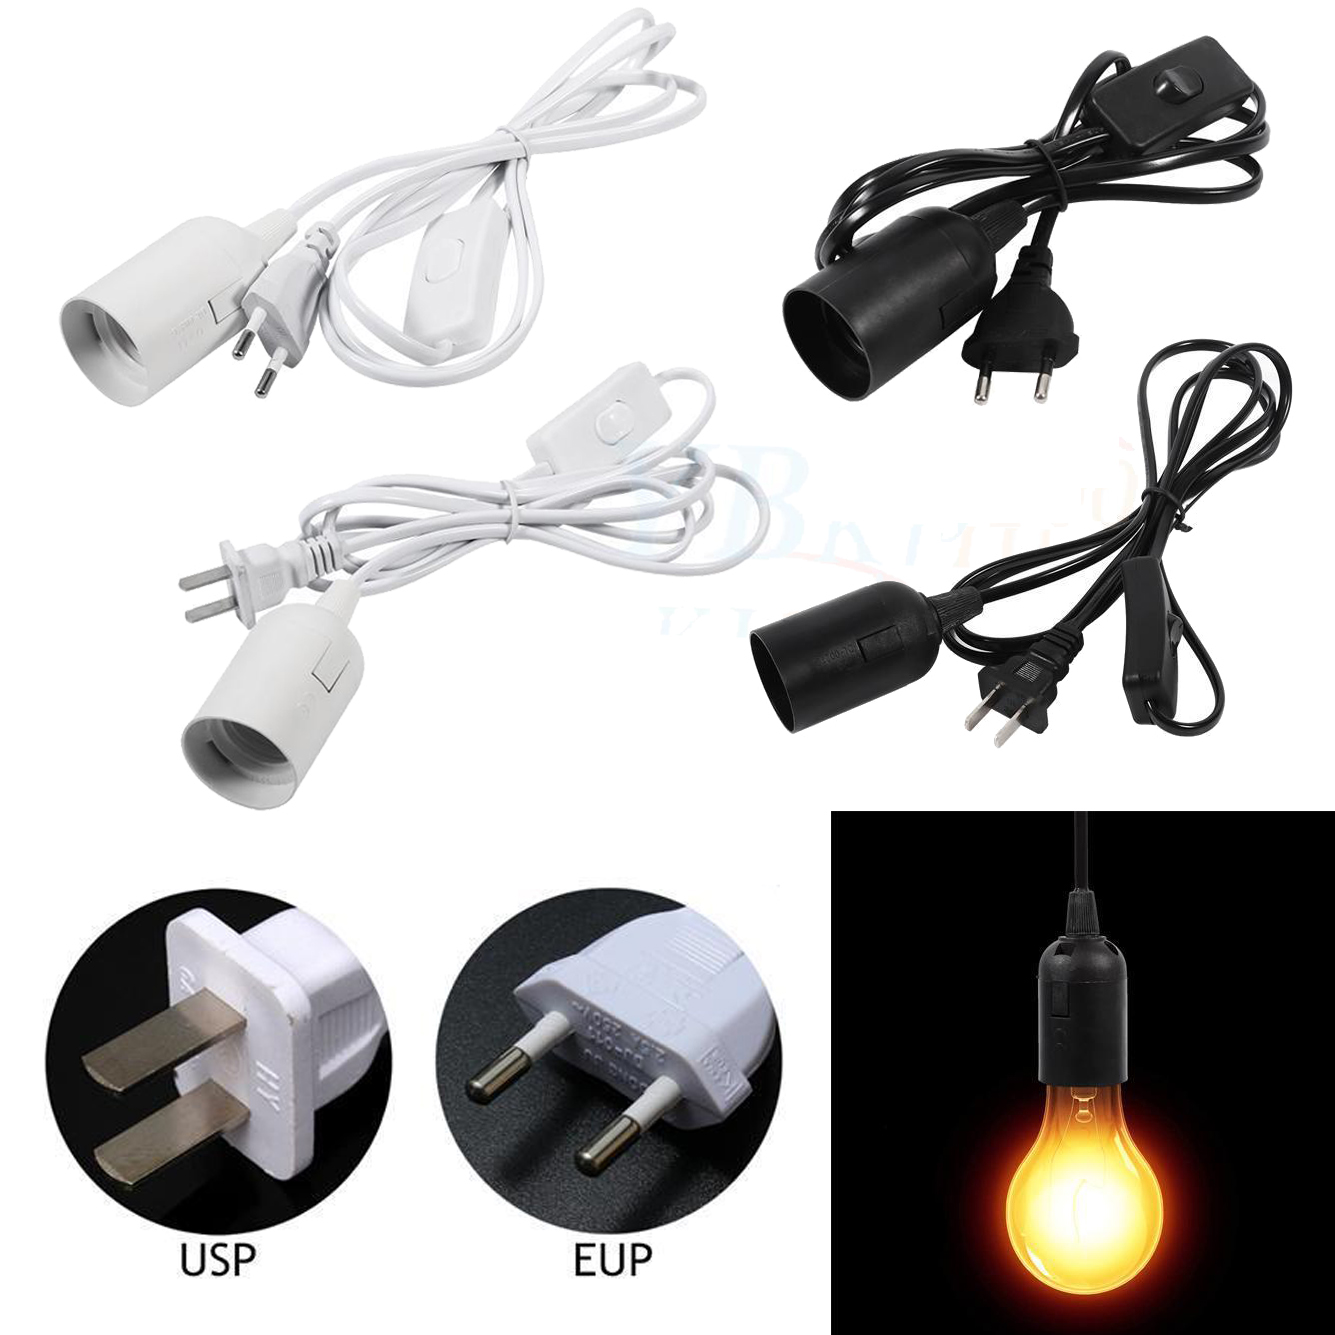 Details About E27 Plug In Pendant Light Fixture Lamp Bulb Socket Cord With Switch Idm